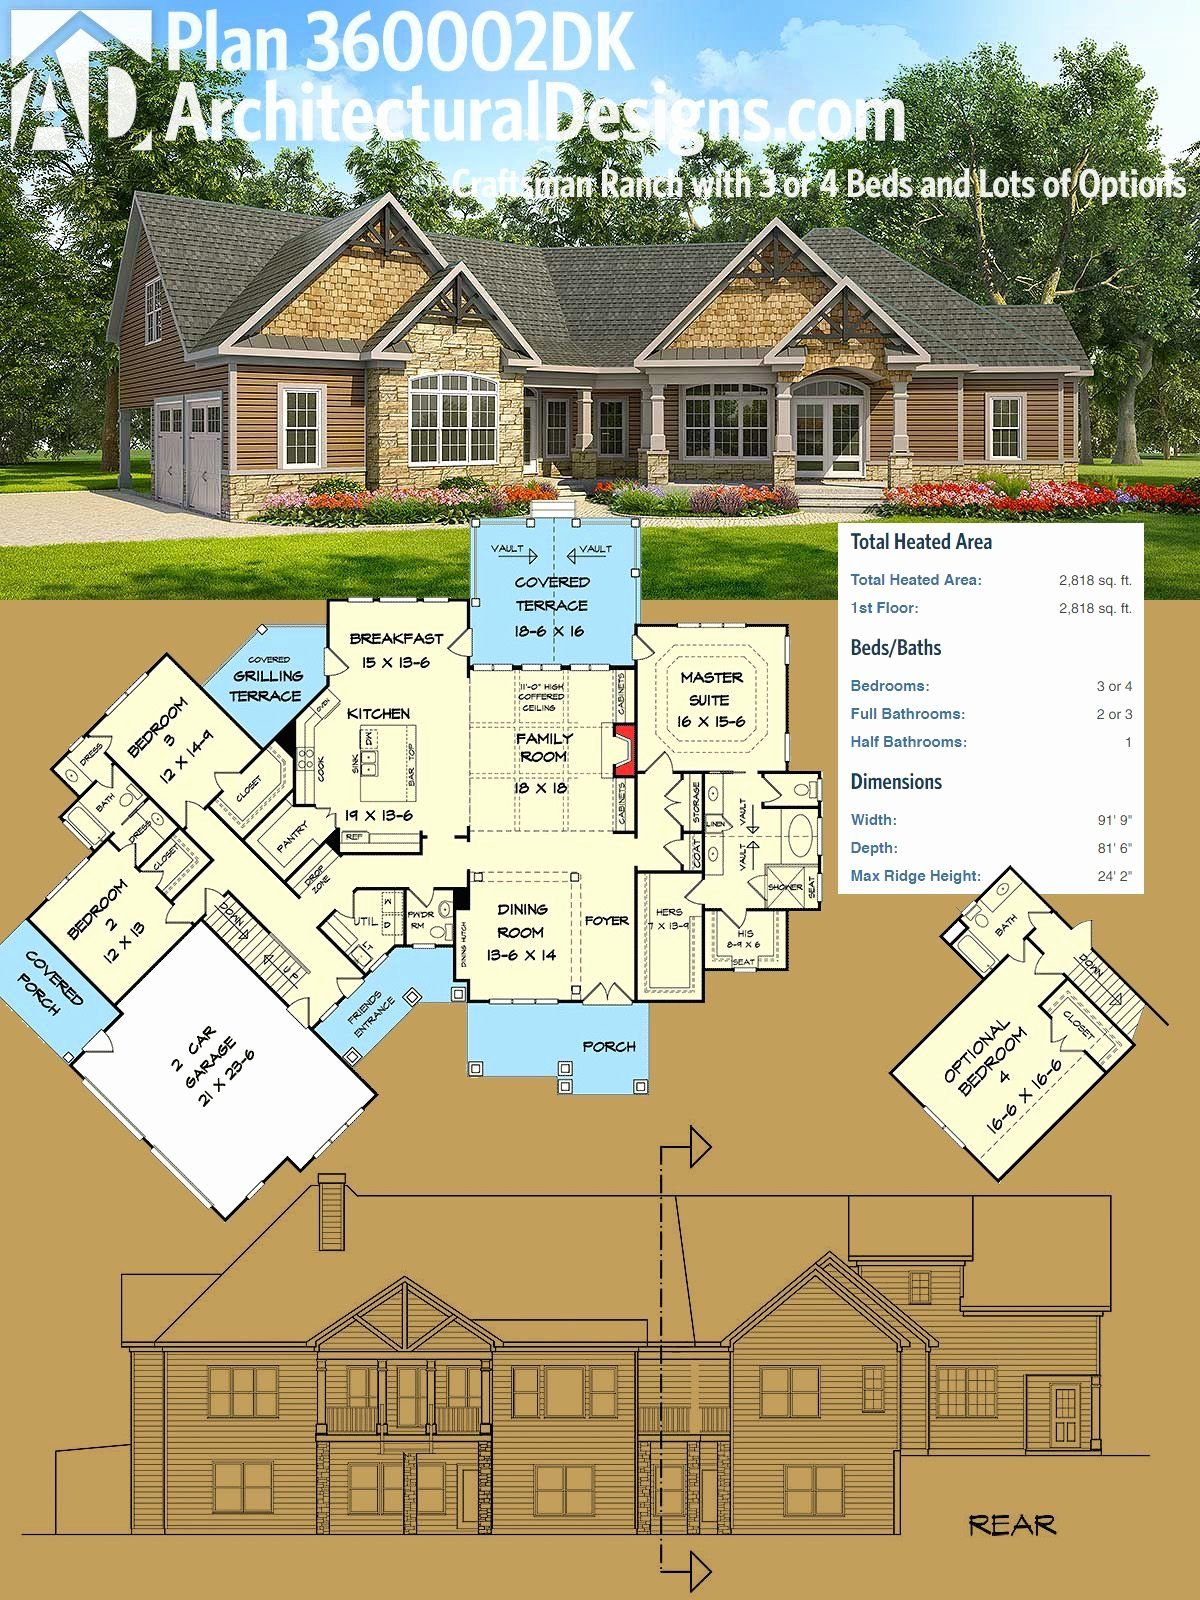 4 Bedroom Craftsman House Plans Lovely Plan Dk Craftsman Ranch With 3 Or 4 Beds And Lots Of In 2020 Craftsman House Plans New House Plans Ranch House Plans